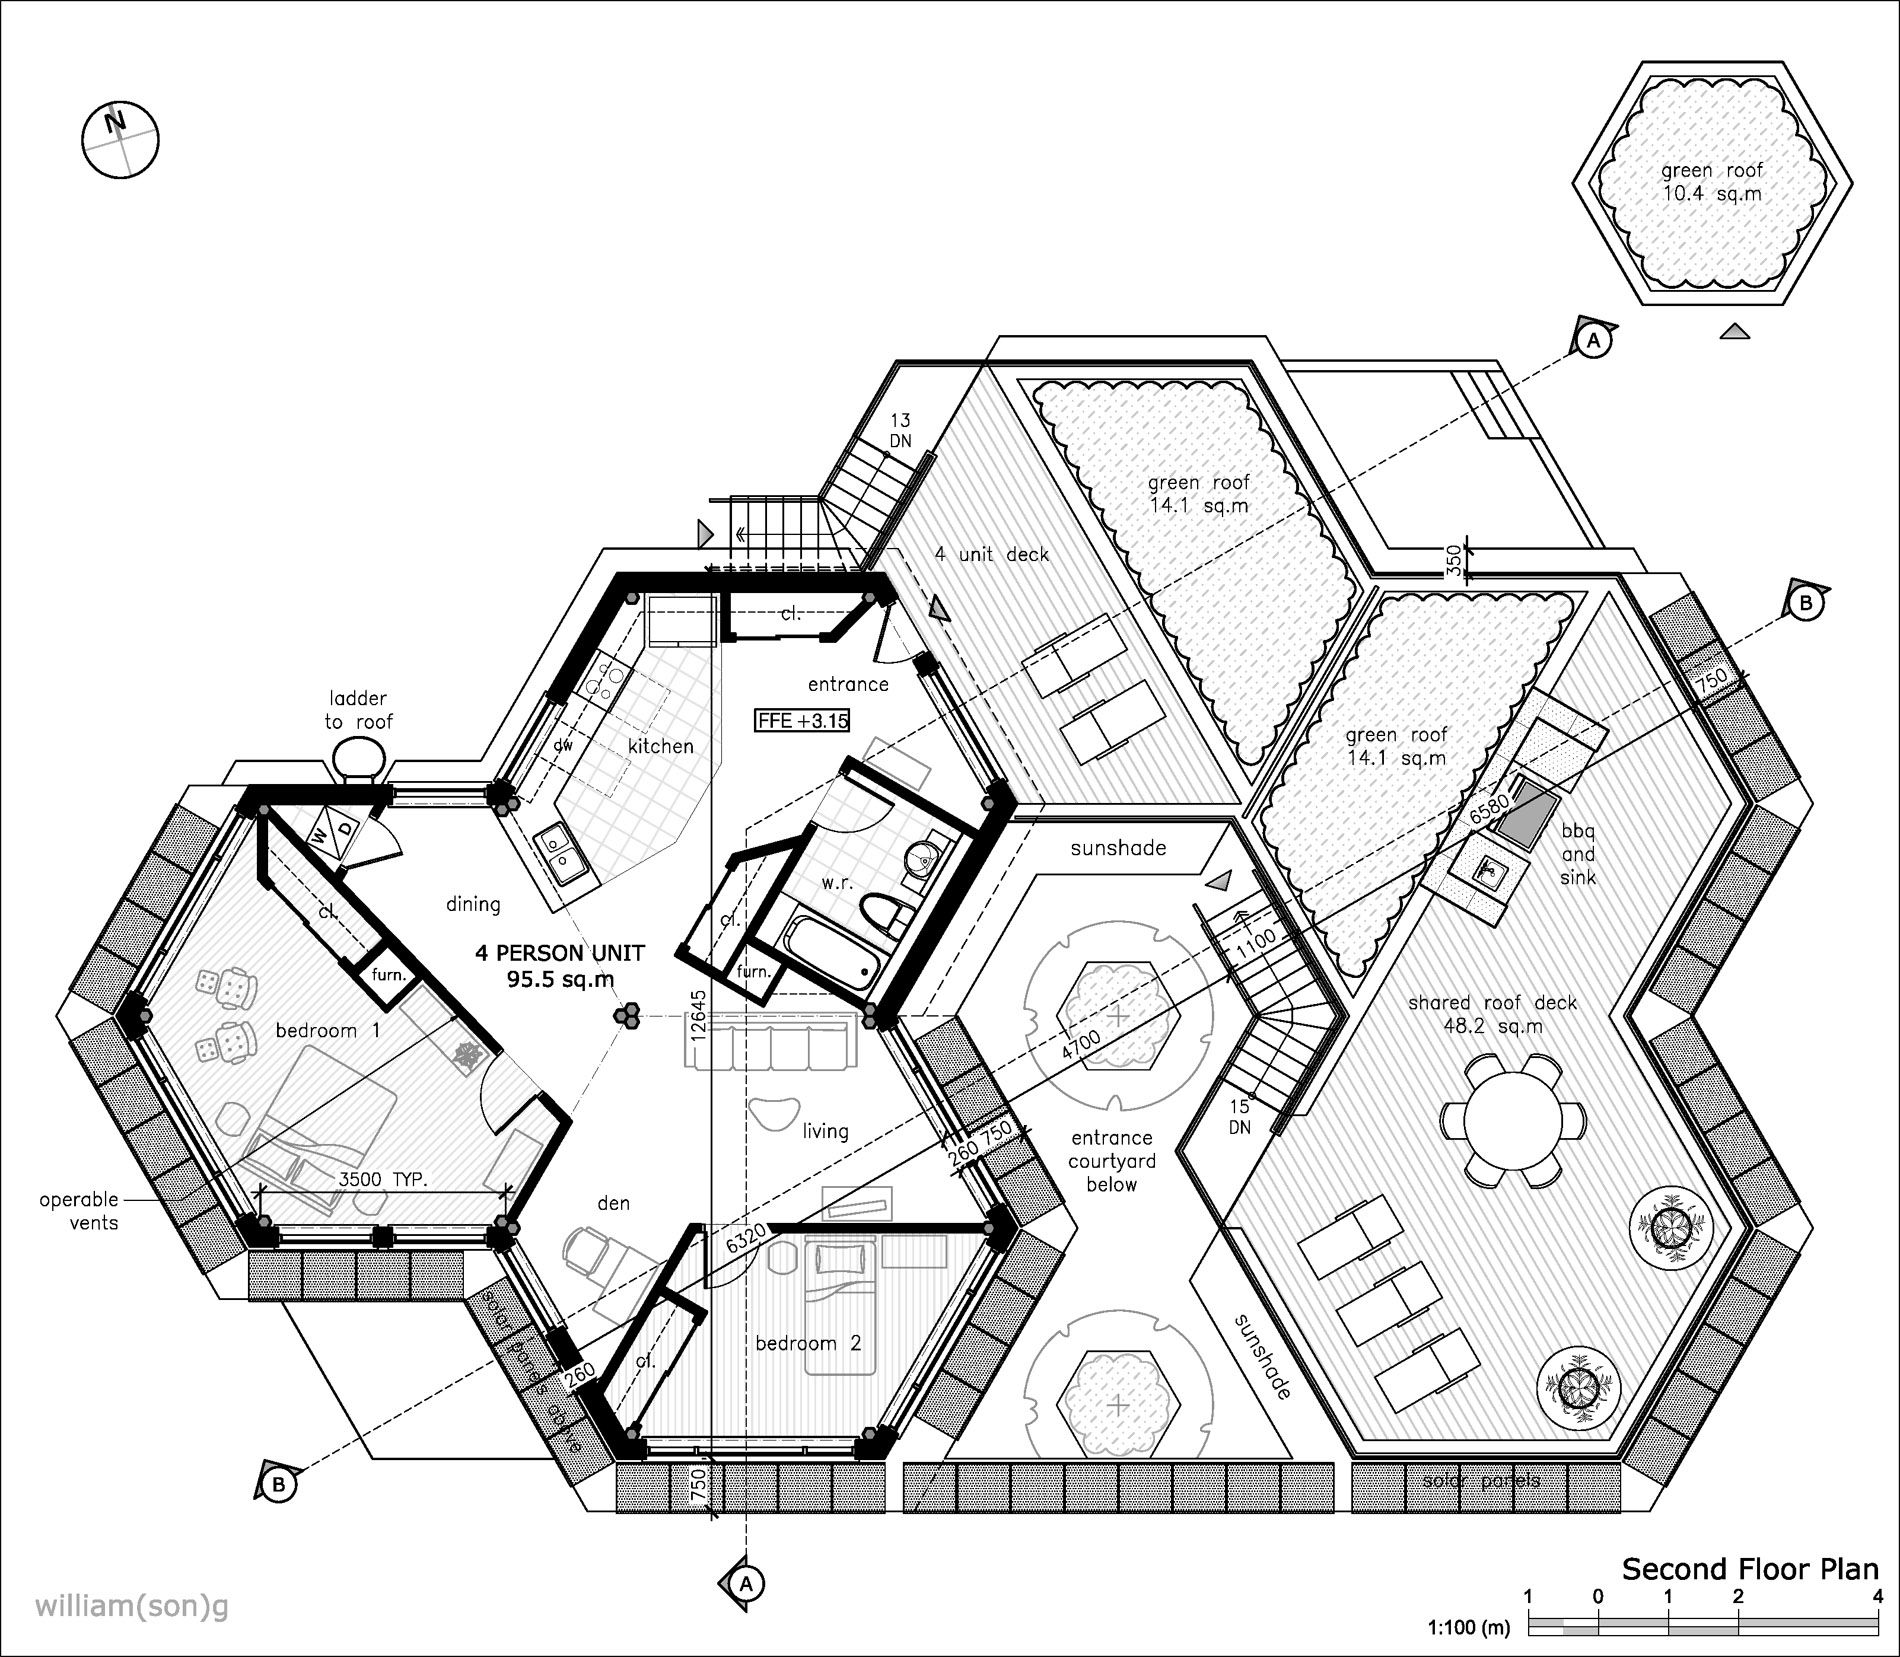 Hexagon house plans willian son g buscar con google for House floor plans architecture